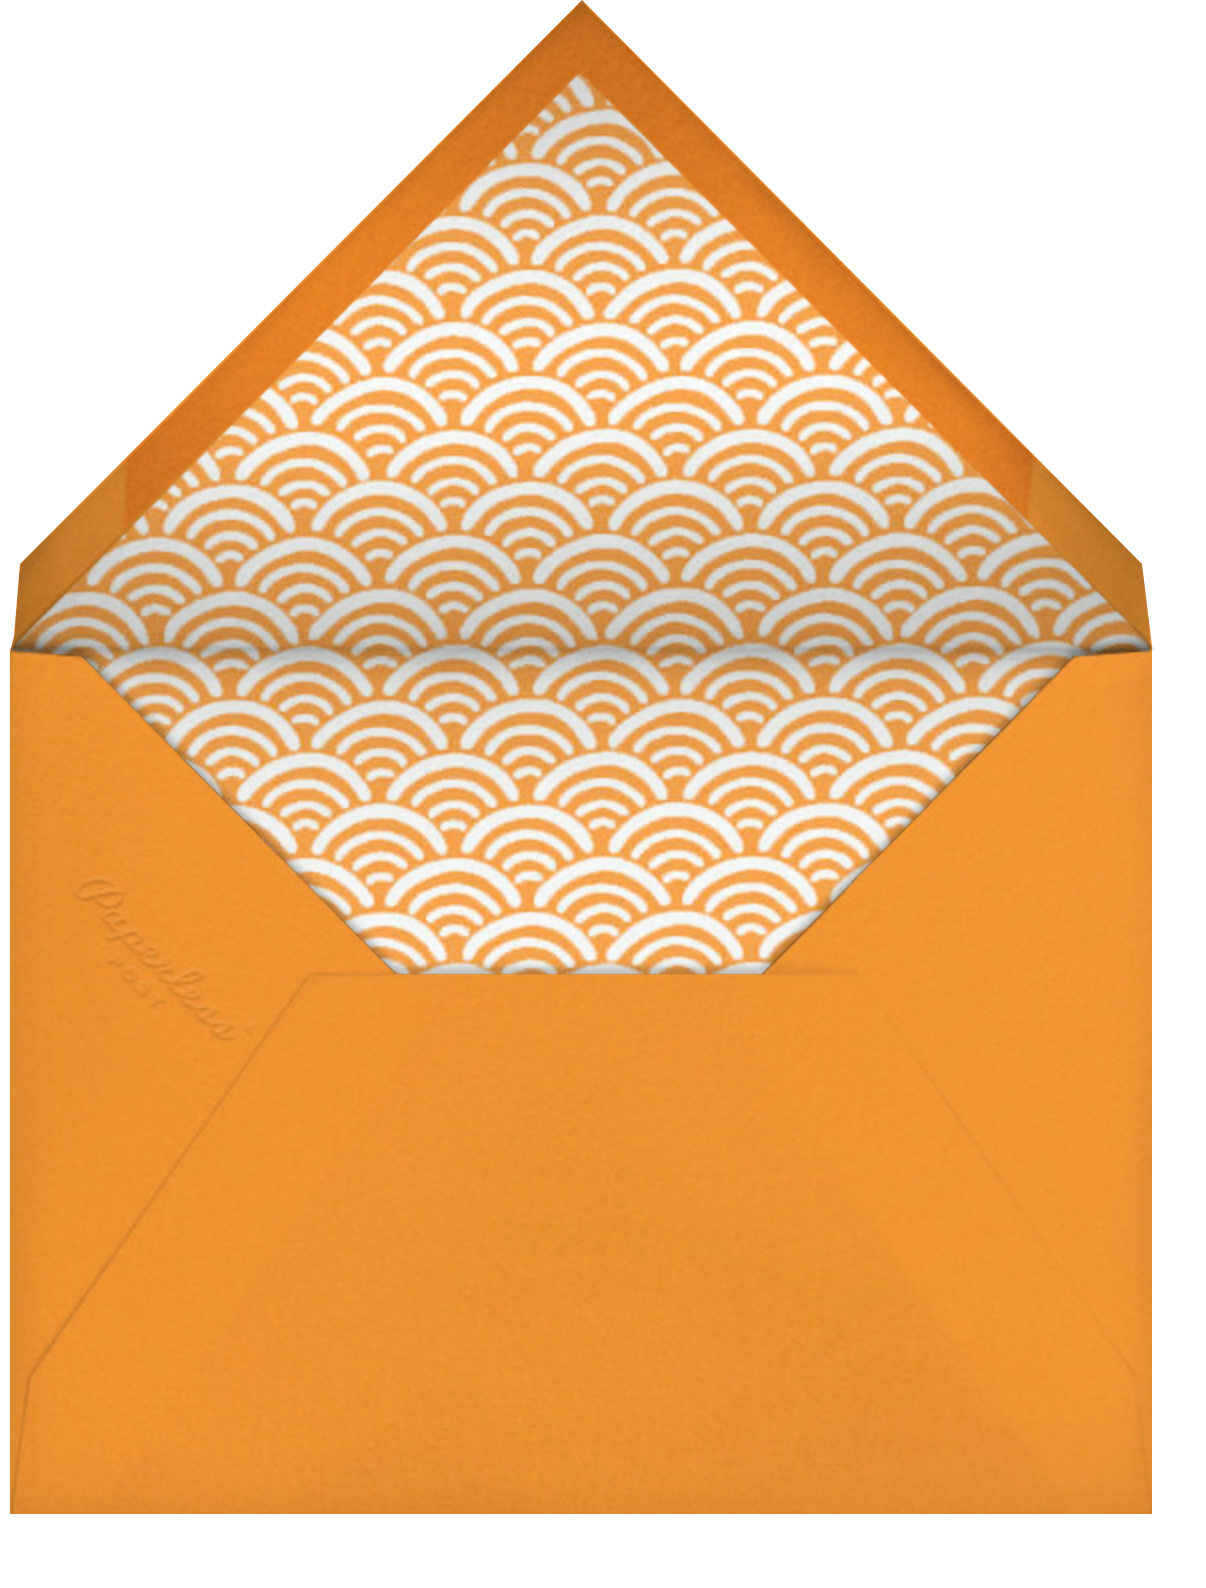 Maude's Pool - Fair - Paperless Post - Pool party - envelope back